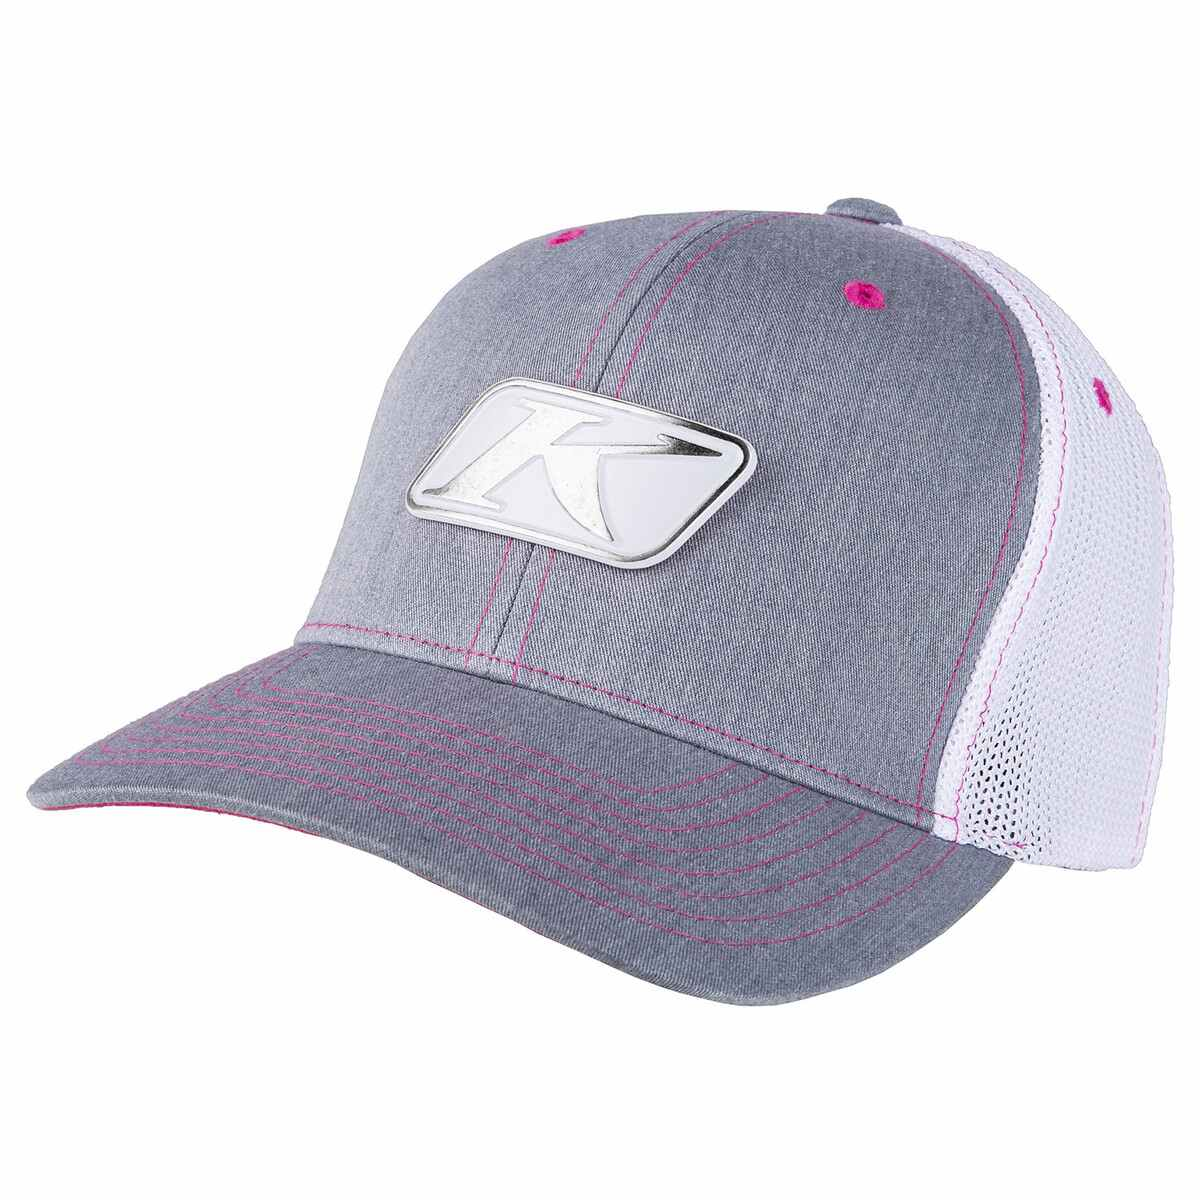 Icon Snap Hat Heathered Grey & Pink